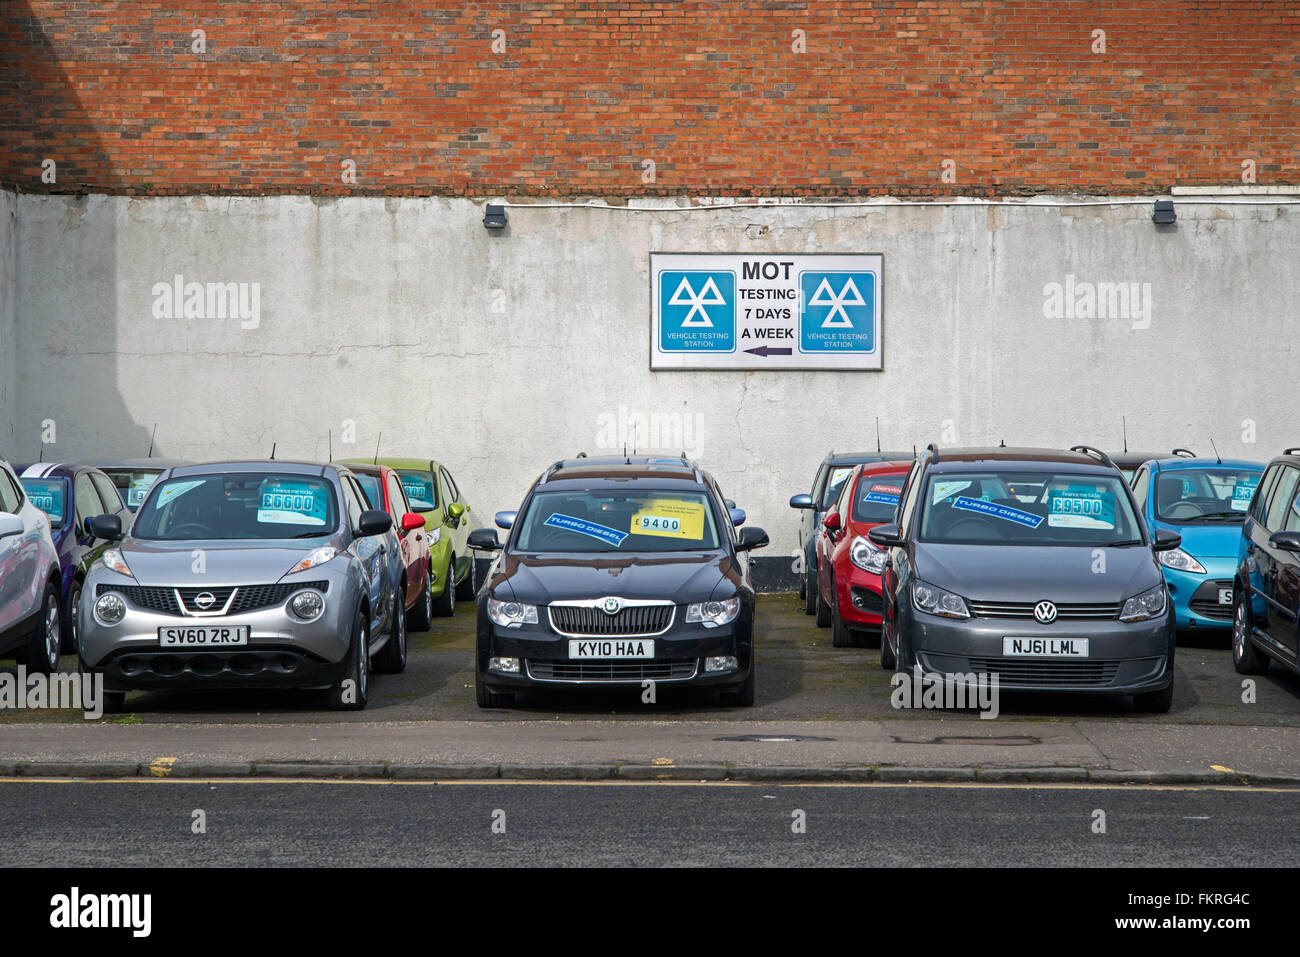 Secondhand cars for sale at a motor dealers and MOT centre in Edinburgh. - Stock Image